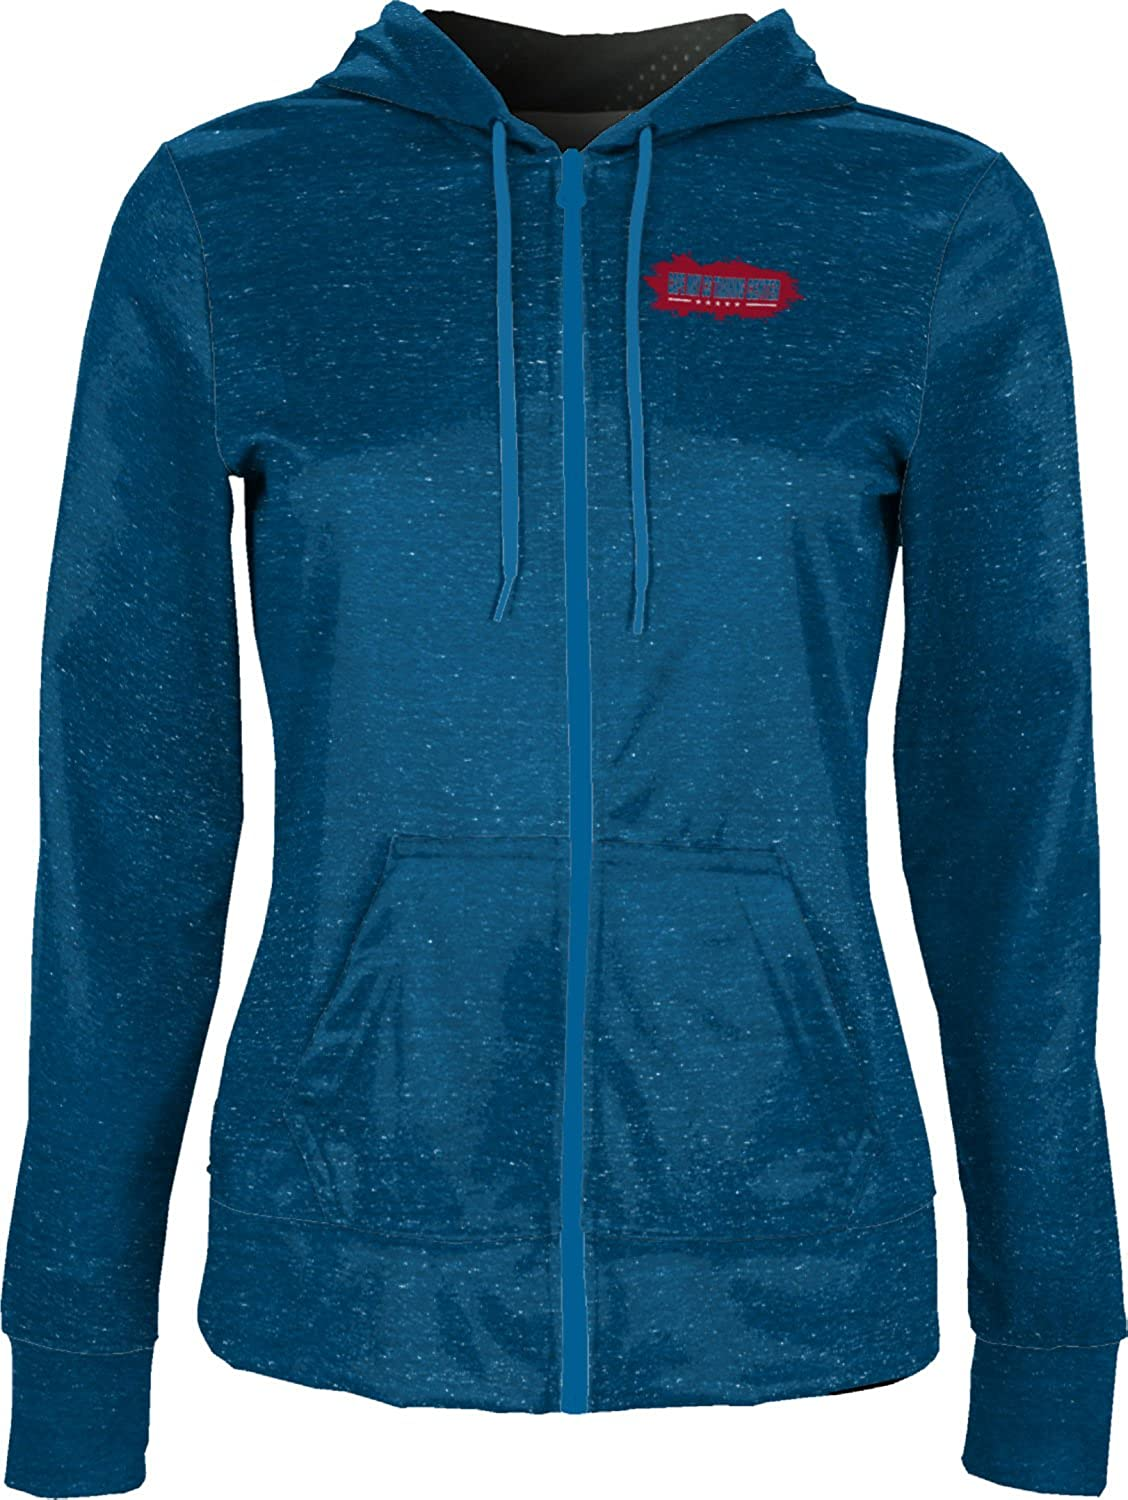 ProSphere Women's Cape May CG Training Center Military Heather Fullzip Hoodie